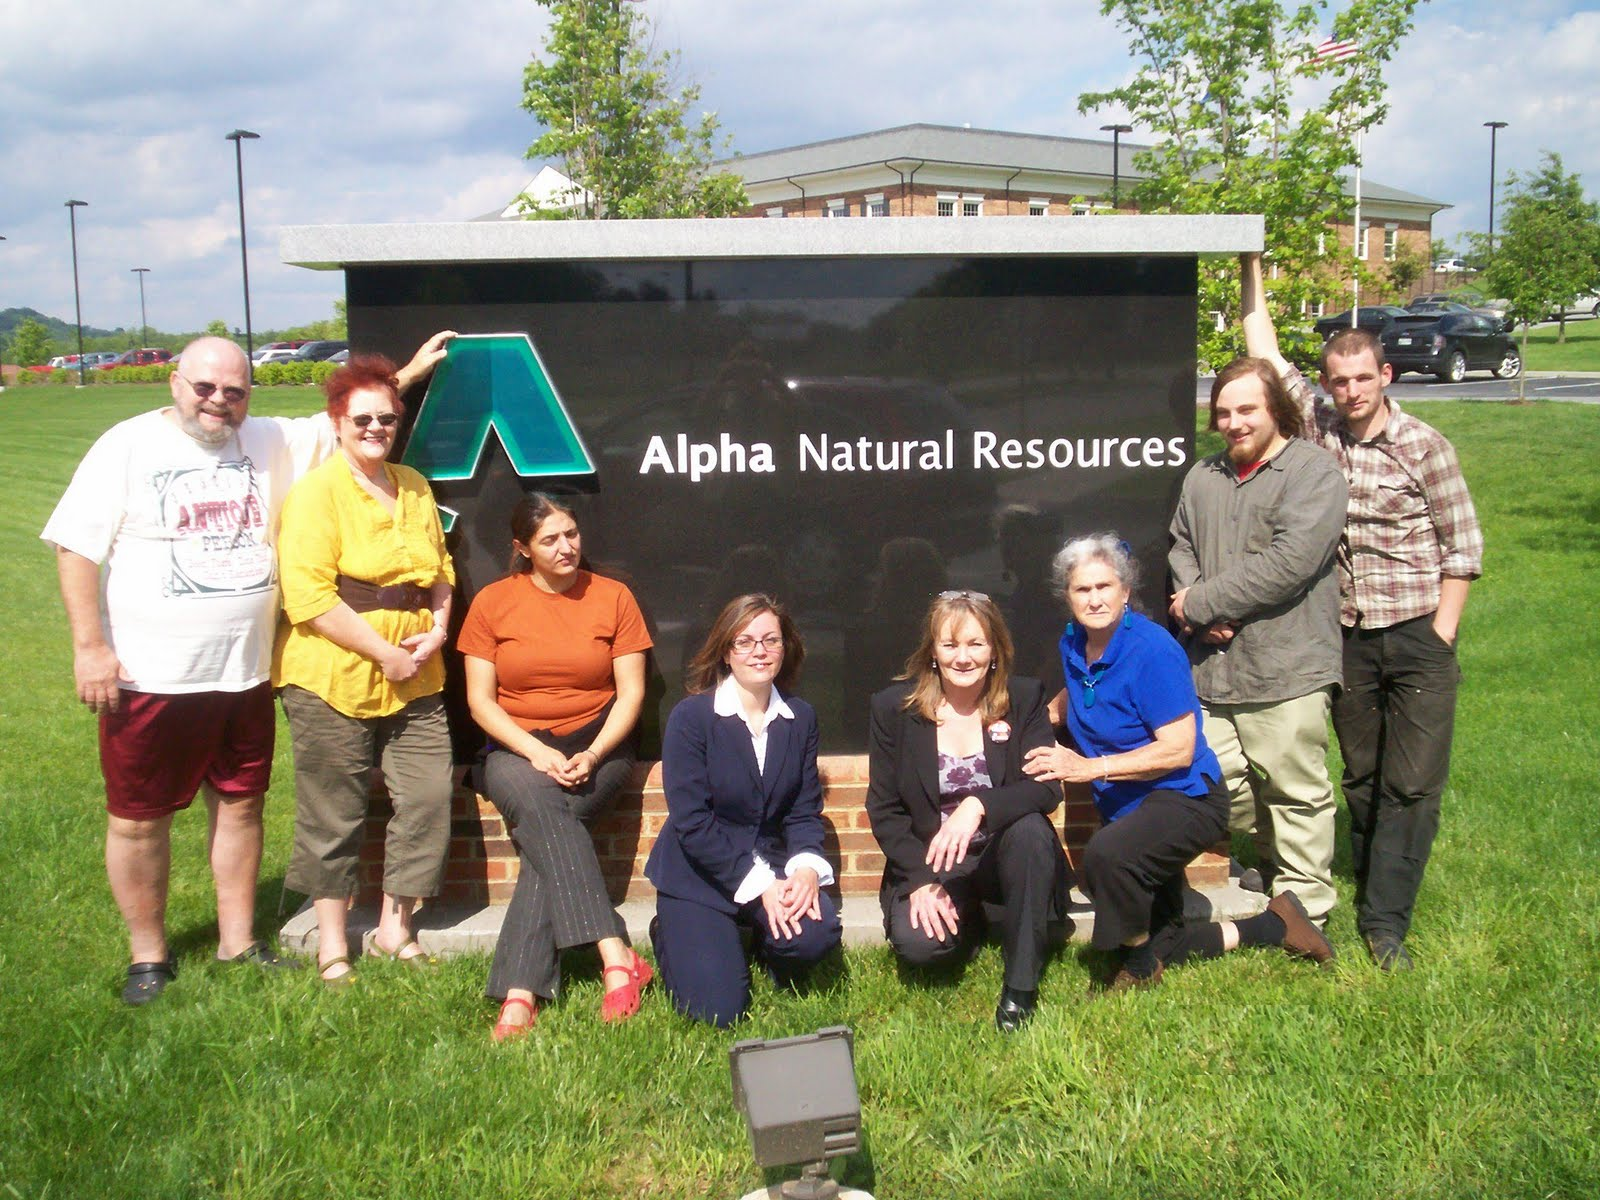 Alpha Natural Resources Pax Wv